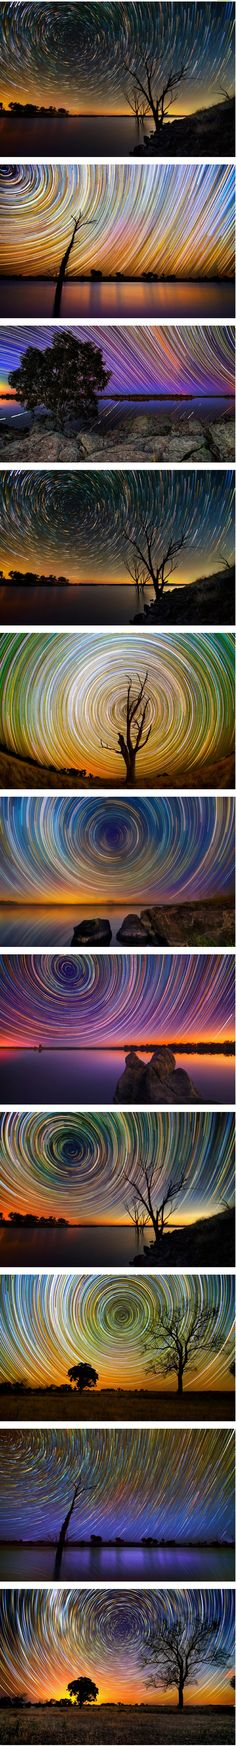 Whirl of StarsAmazing sky images from Australia-based photographer Lincoln Harrison who has been taking photos for less than two years. In Harrison's photos, the rotation of the Earth makes the stars appear as if they're traveling across the sky.